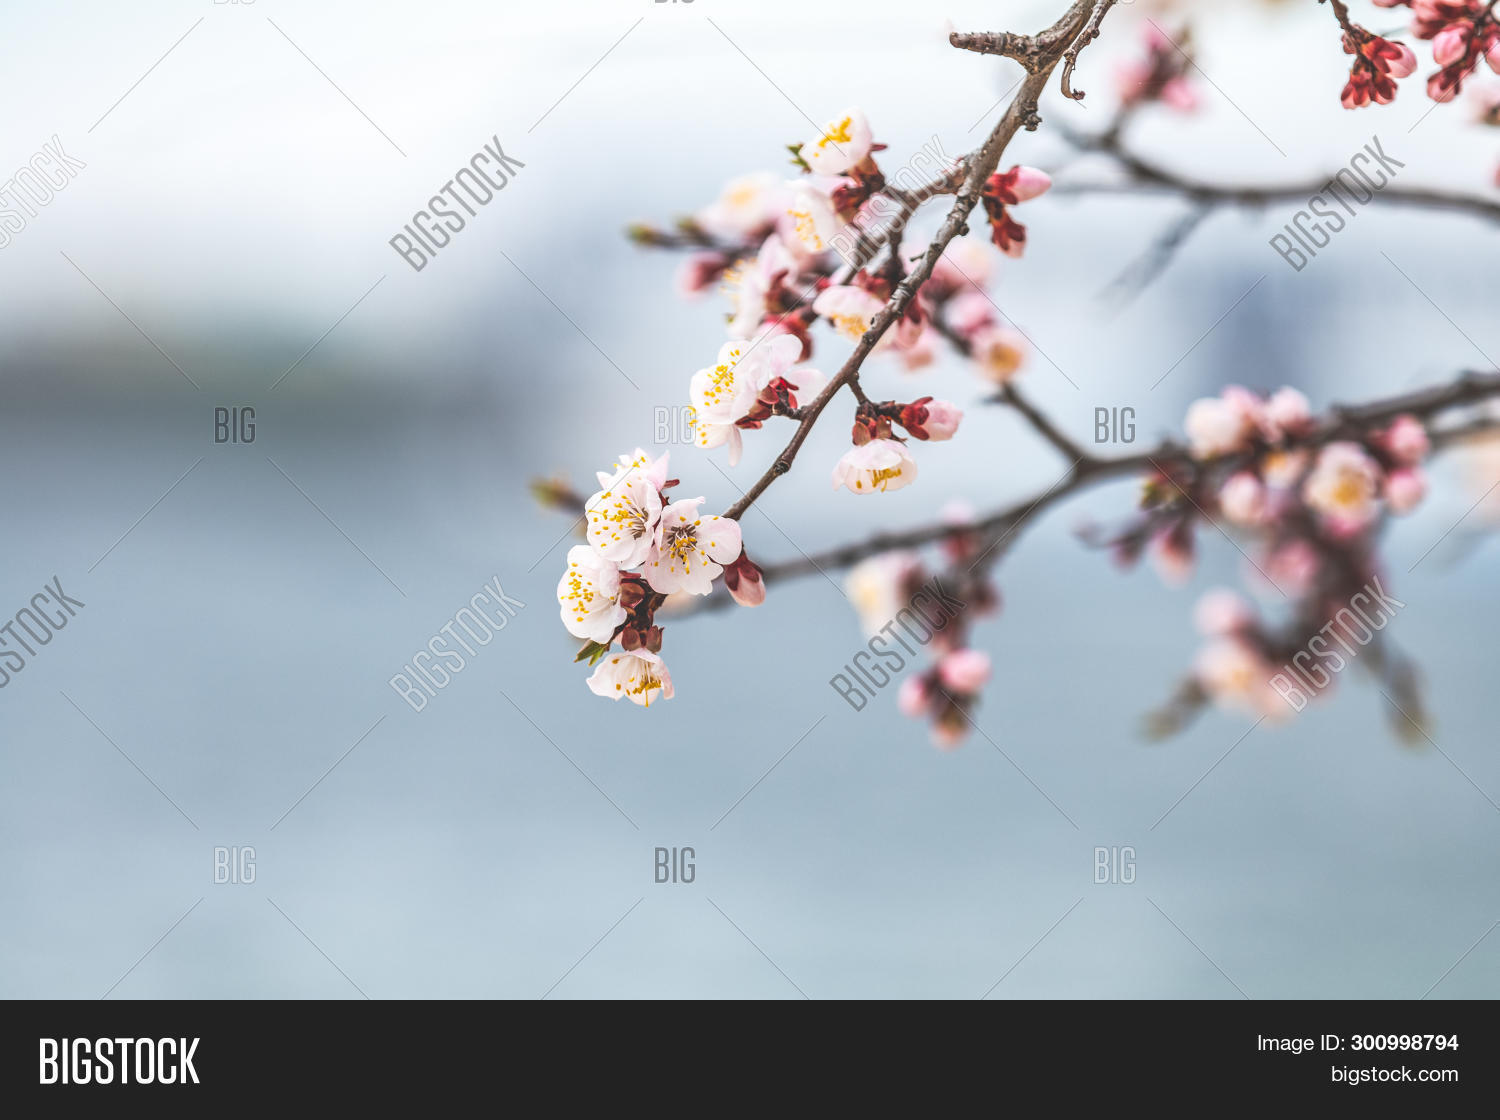 apricot,april,aroma,beams,beautiful,beauty,beginnings,bloom,blooming,blossom,blurred,bokeh,border,branch,bud,close,closeup,color,detail,flora,floral,flower,fragility,fresh,freshness,gardening,leaf,life,light,march,natural,nature,petal,pink,plant,pure,romantic,sakura,space,spring,springtime,sun,sunbeams,tranquil,tree,white